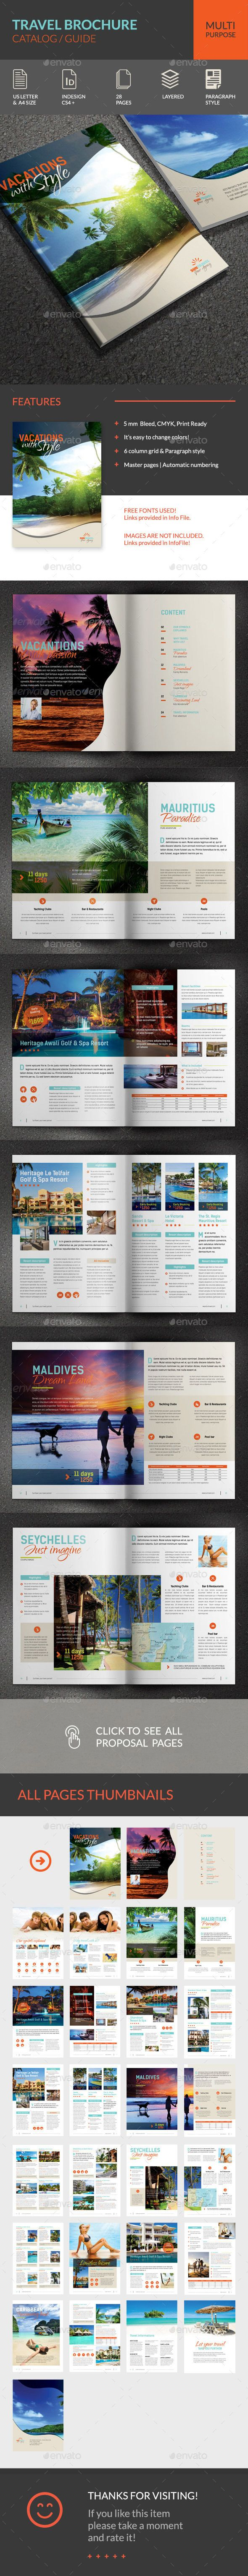 Travel Brochure Template InDesign INDD. Download here: http://graphicriver.net/item/travel-brochure/14848974?ref=ksioks